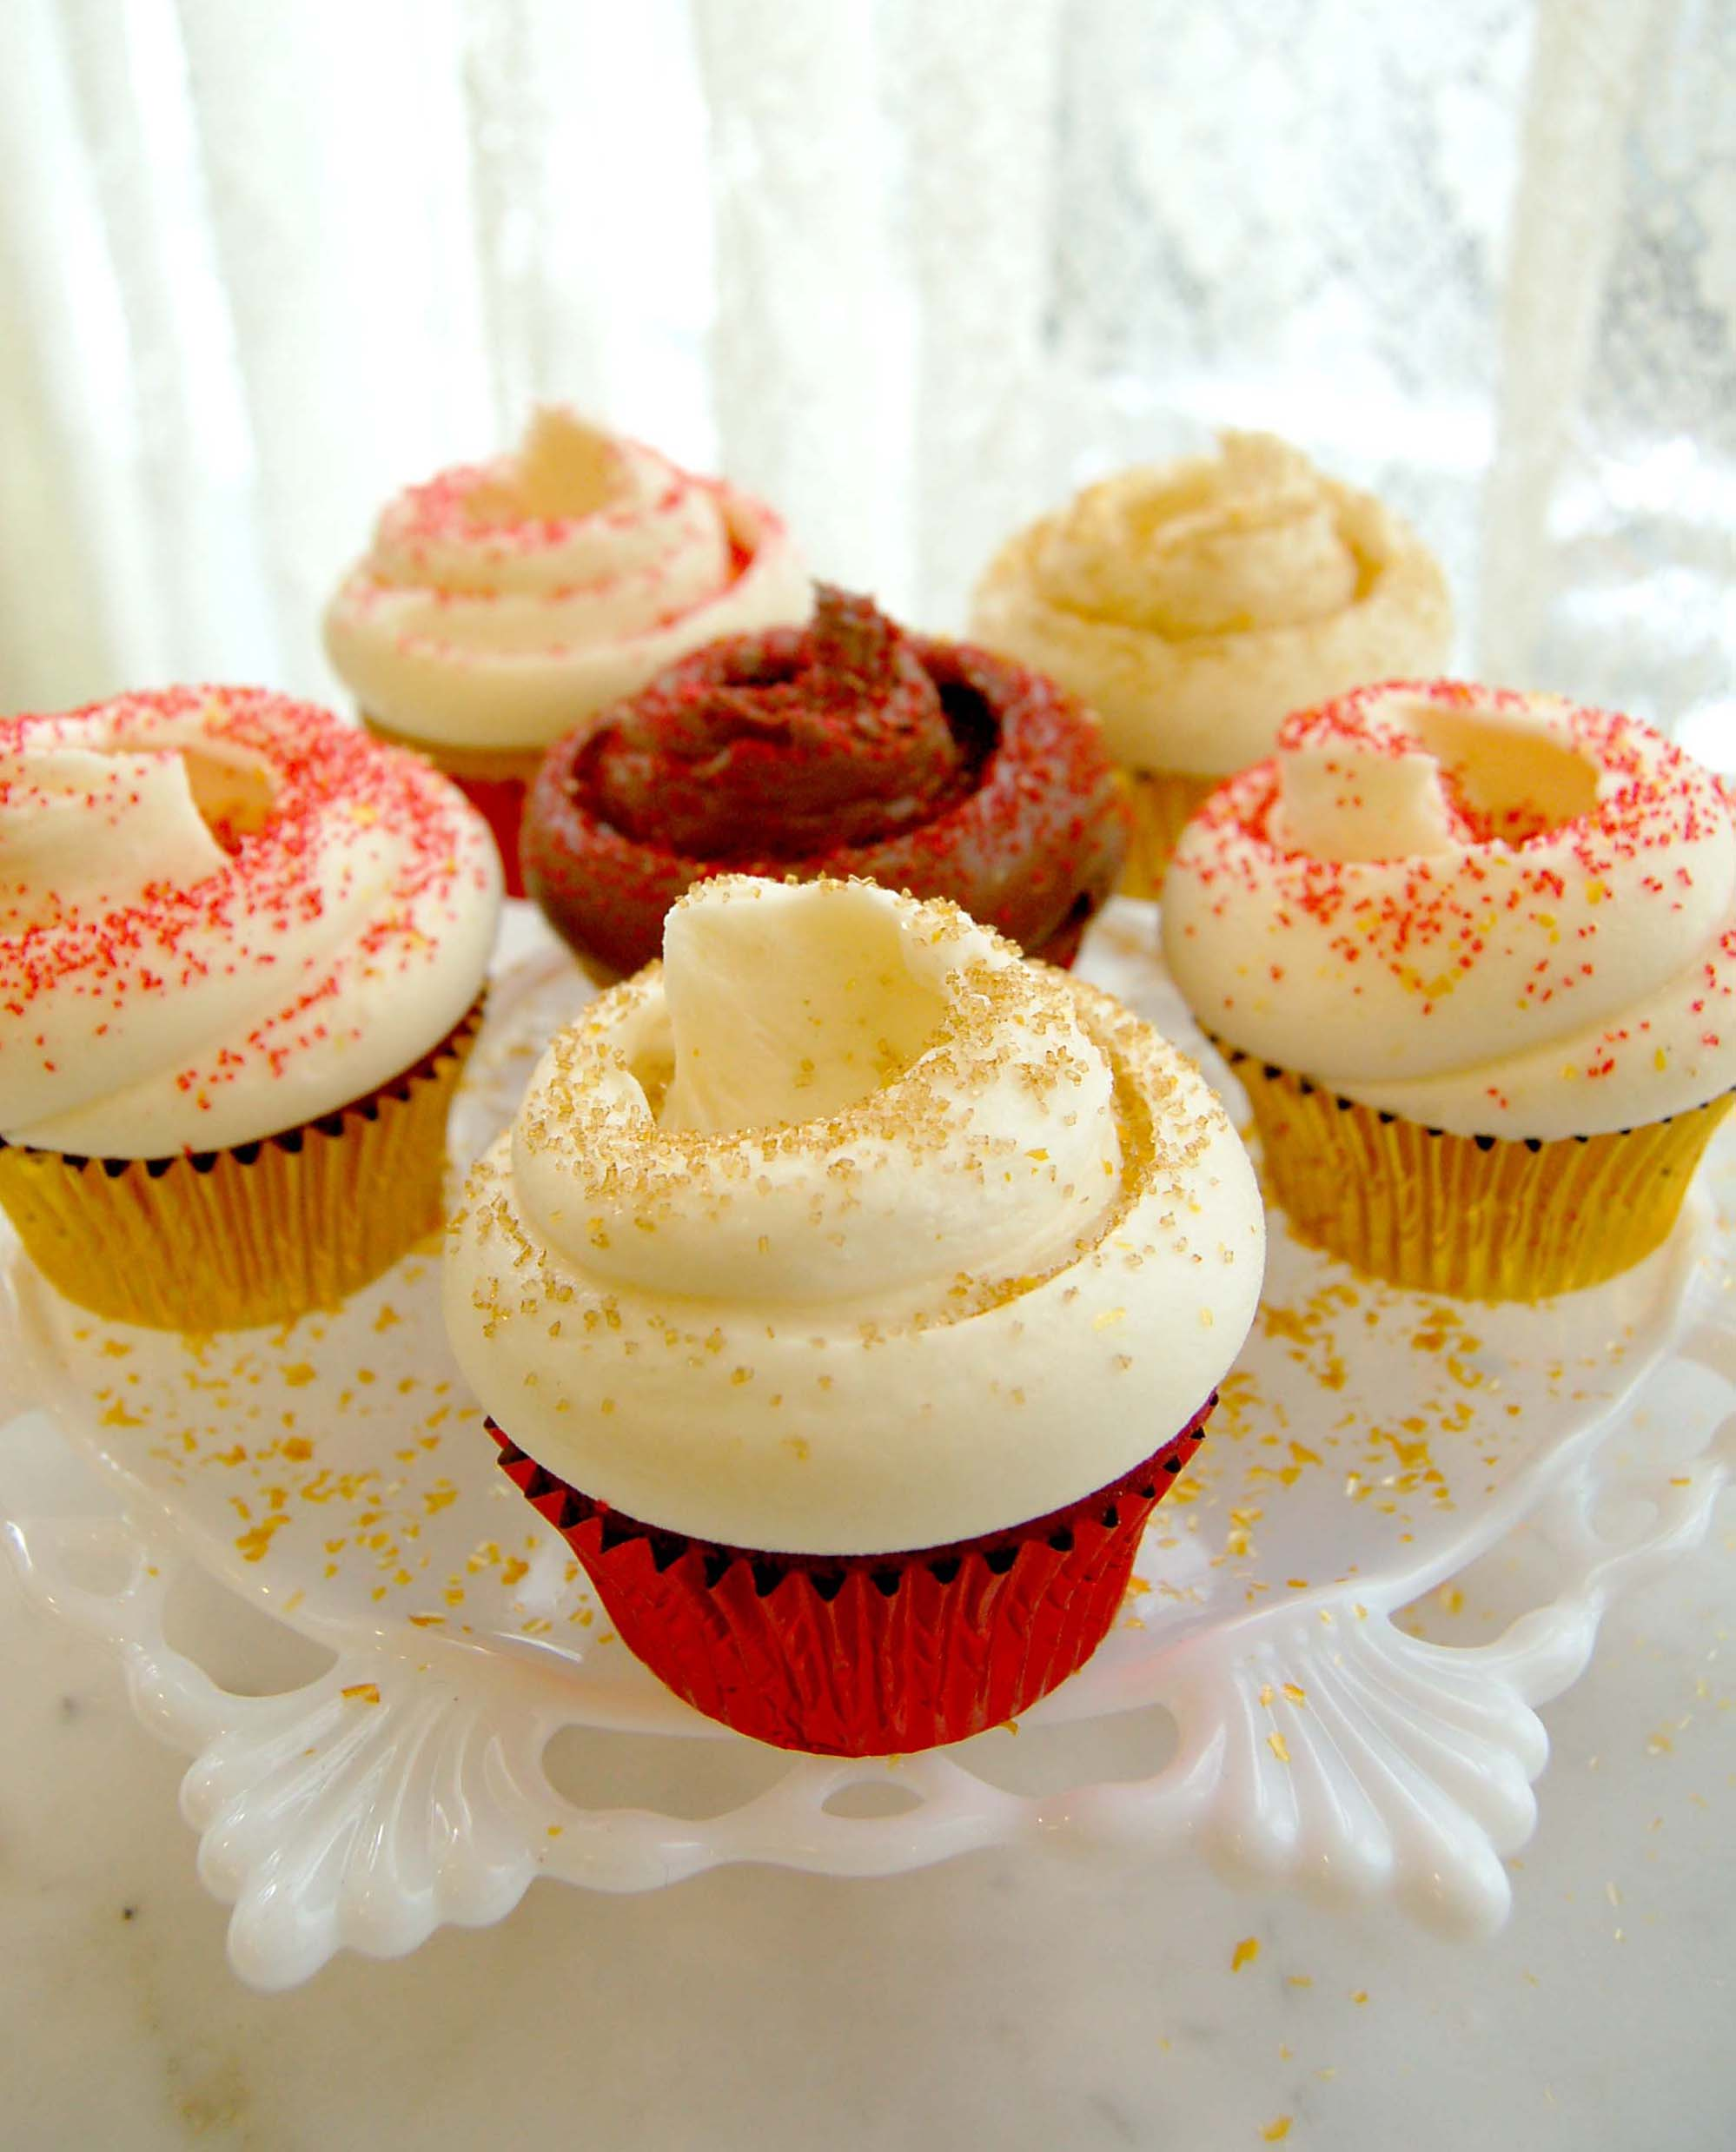 Magnolia's Chinese New Year Cupcakes